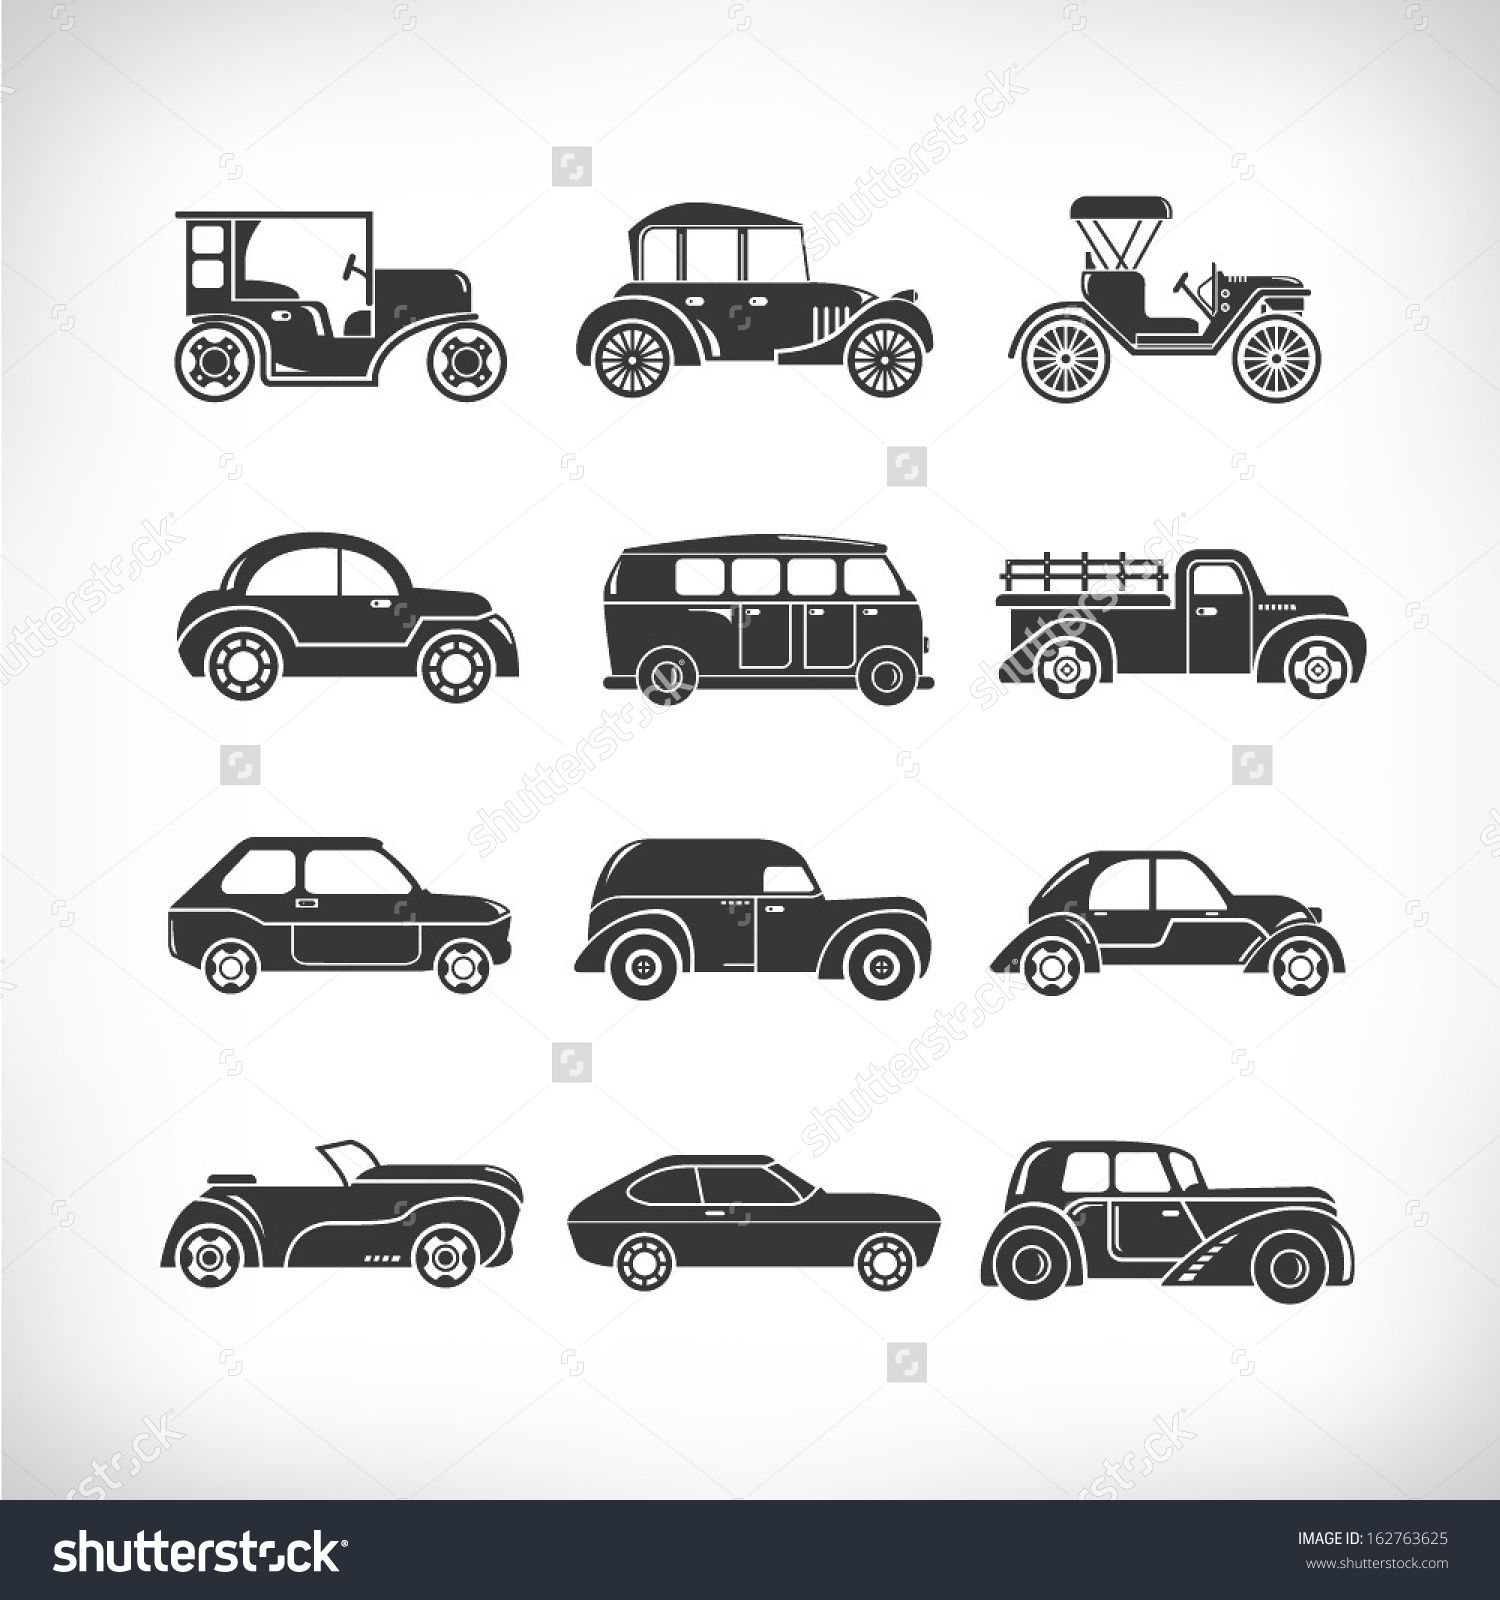 Image Result For Classic Car Icons Icon Sets Pinterest